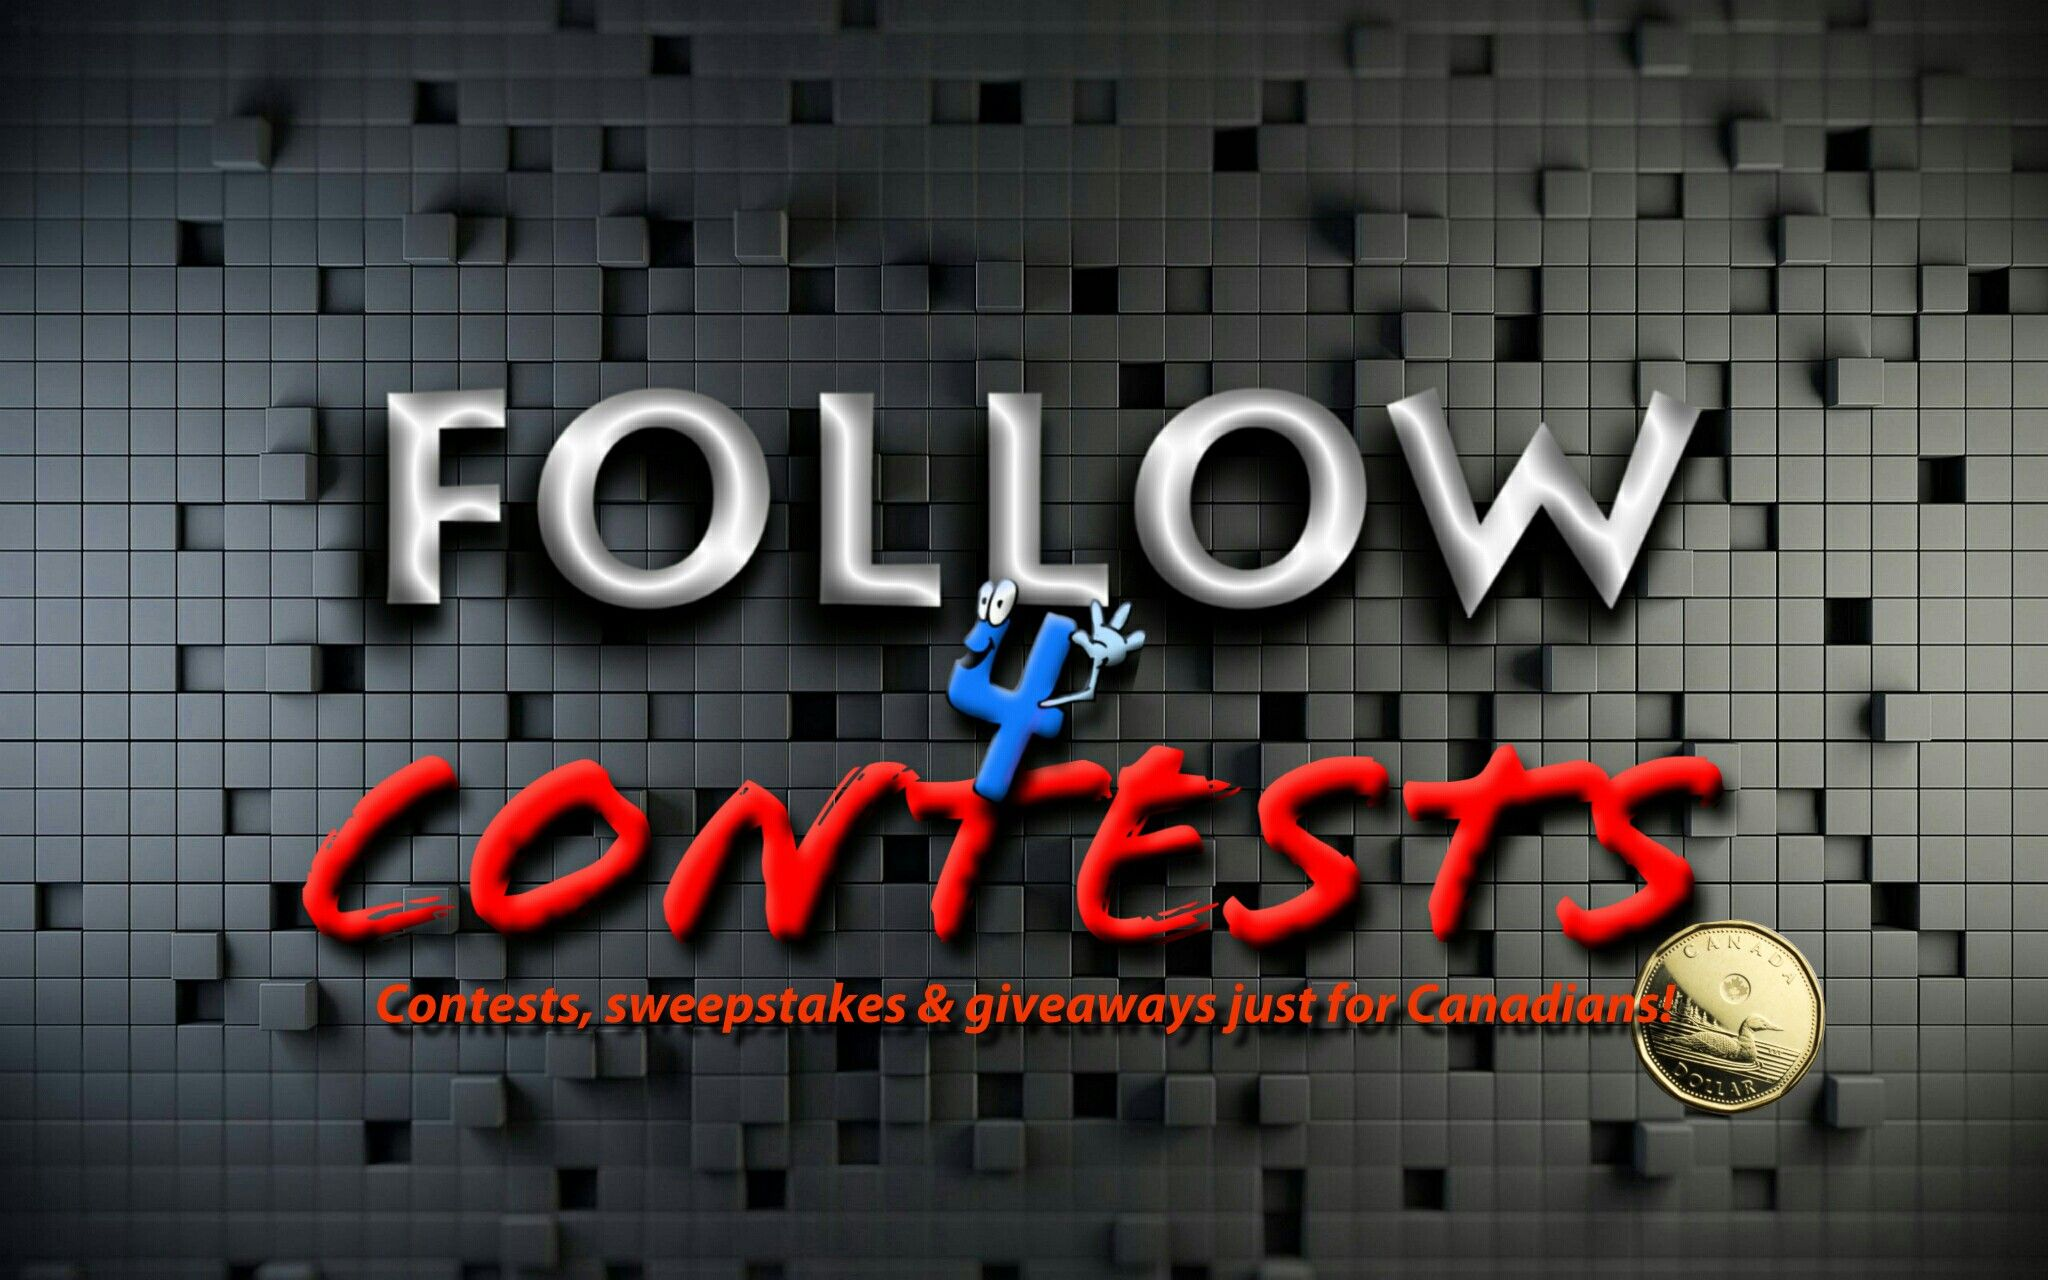 Pin by canadian contests sweepstakes and giveaways on